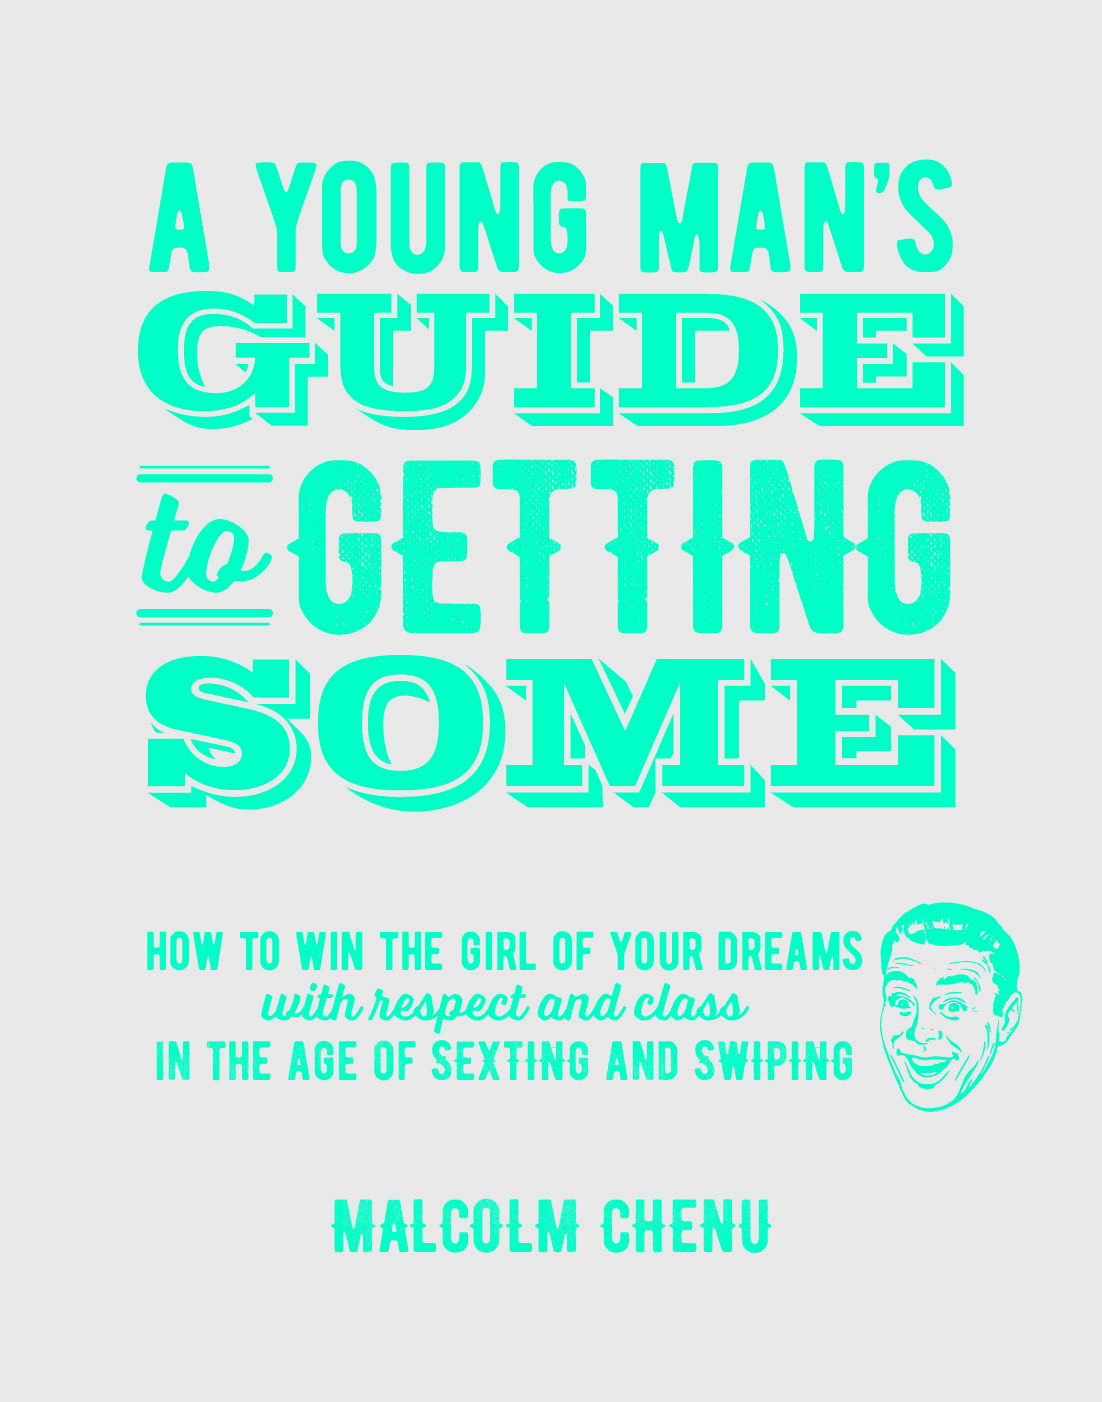 A Young Man's Guide To Getting Some